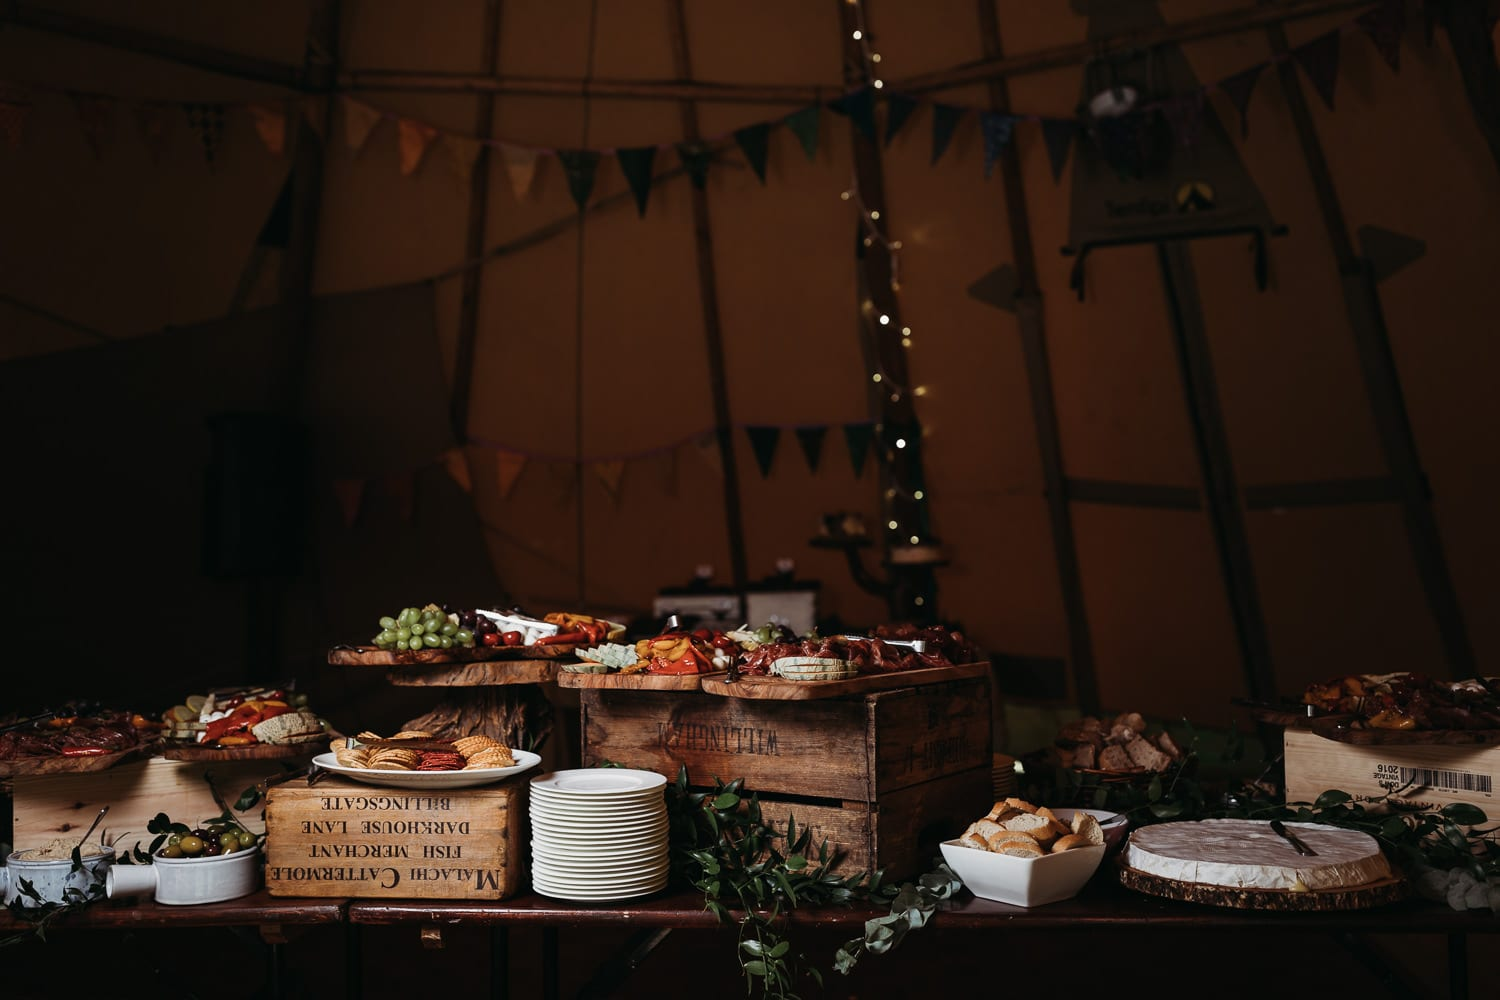 Horsley Hale farm festival wedding